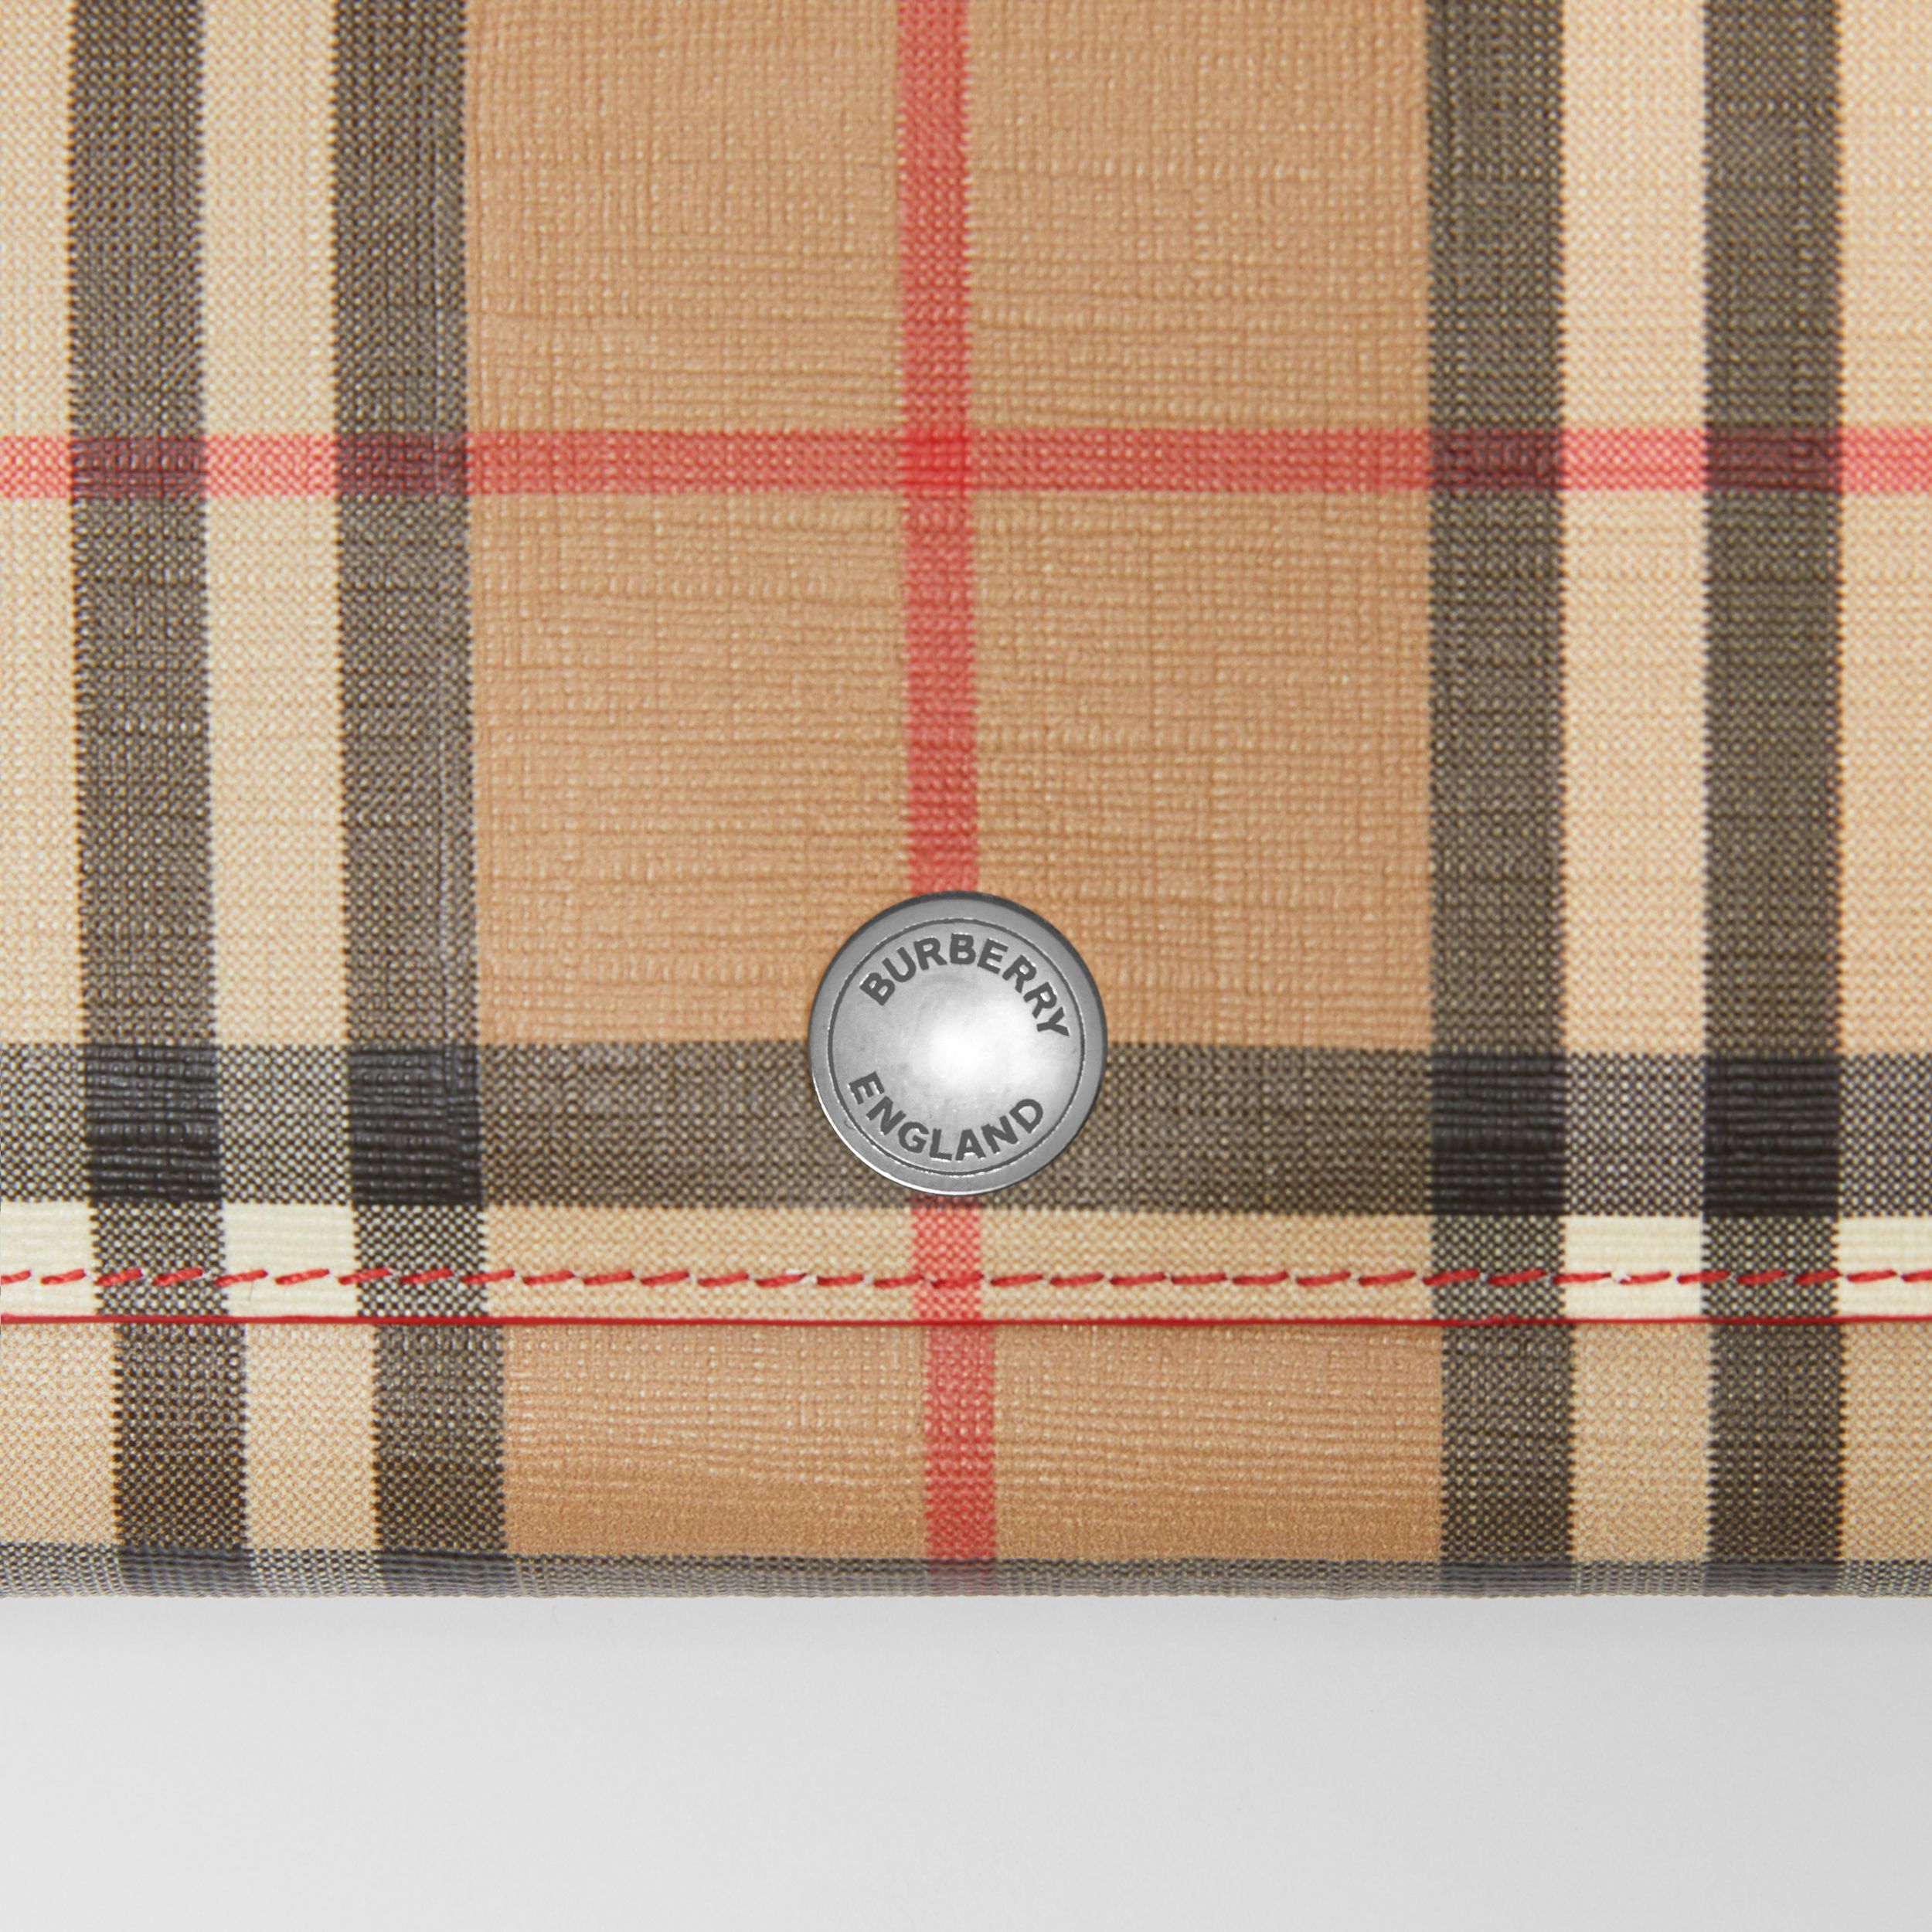 Vintage Check and Leather Continental Wallet in Bright Military Red - Women | Burberry - 2